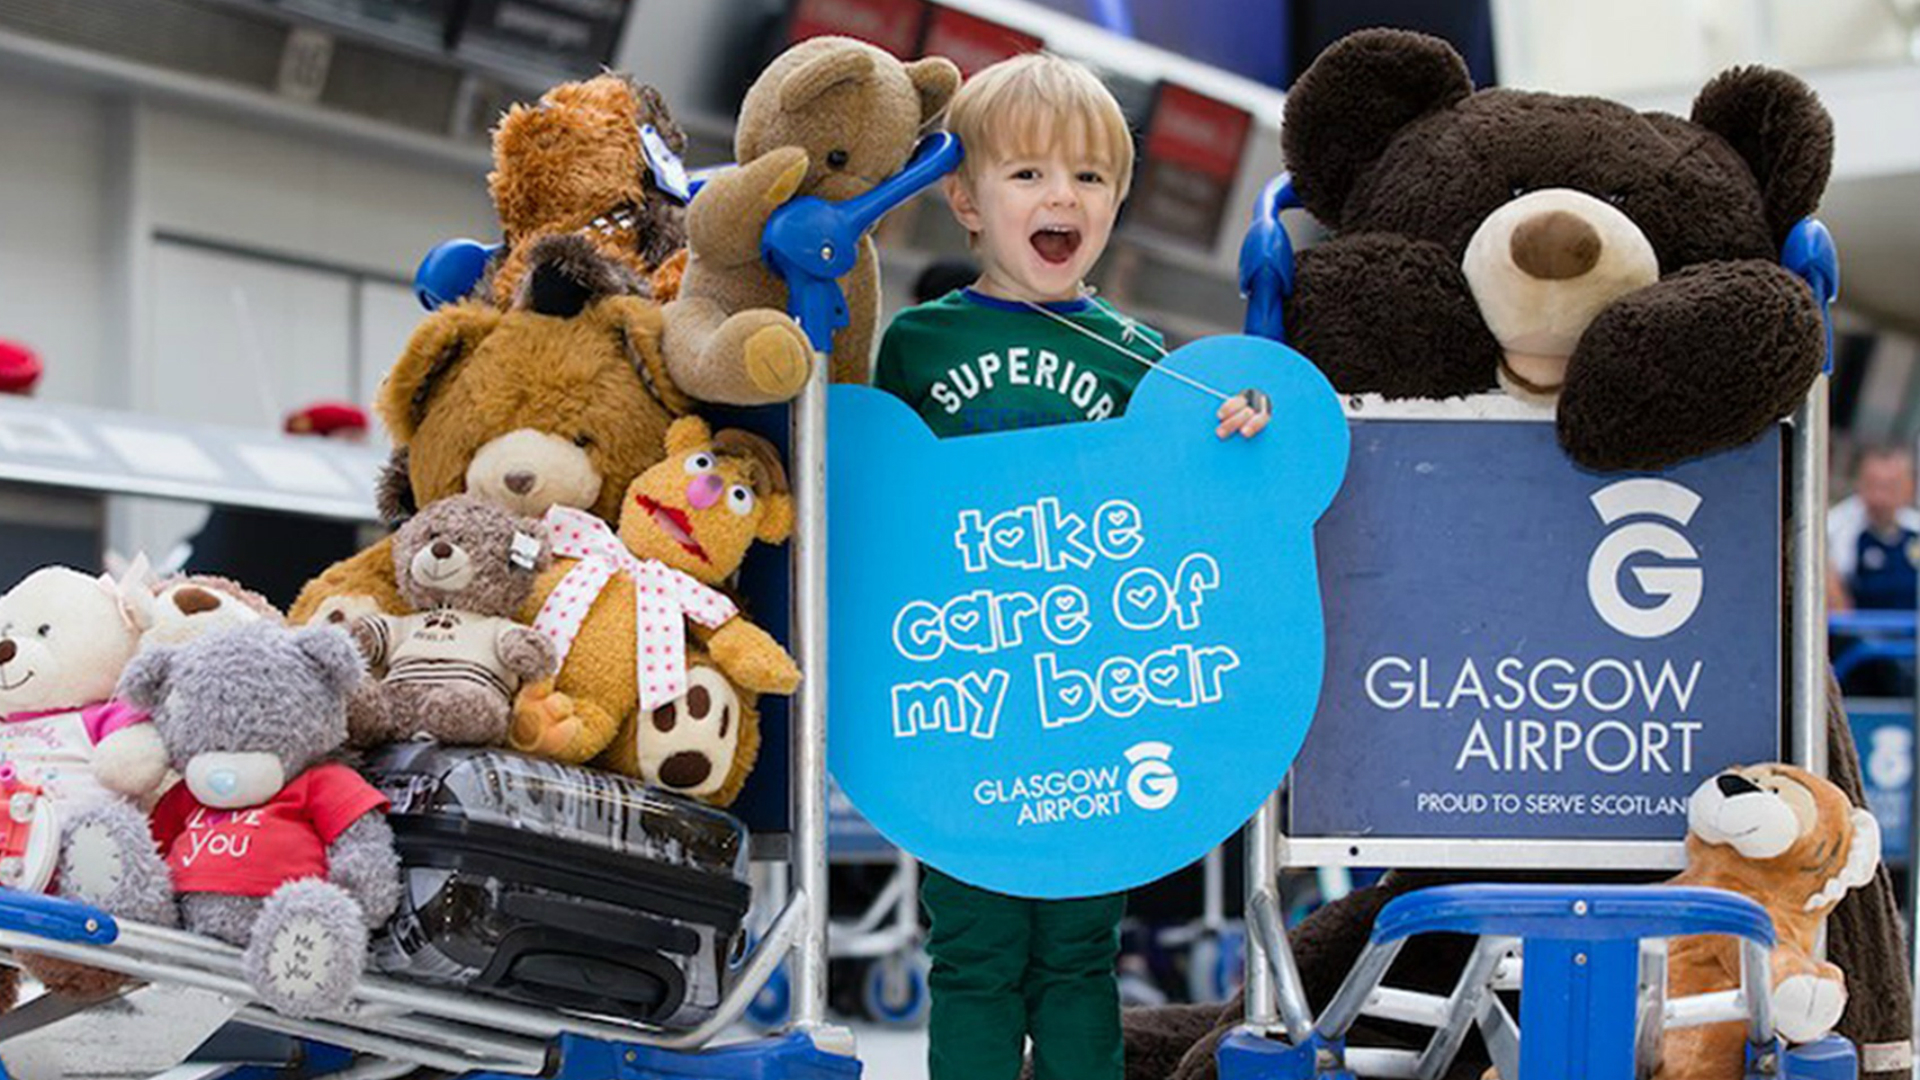 Glasgow Airport has launched tags for youngsters to attach to their toys.